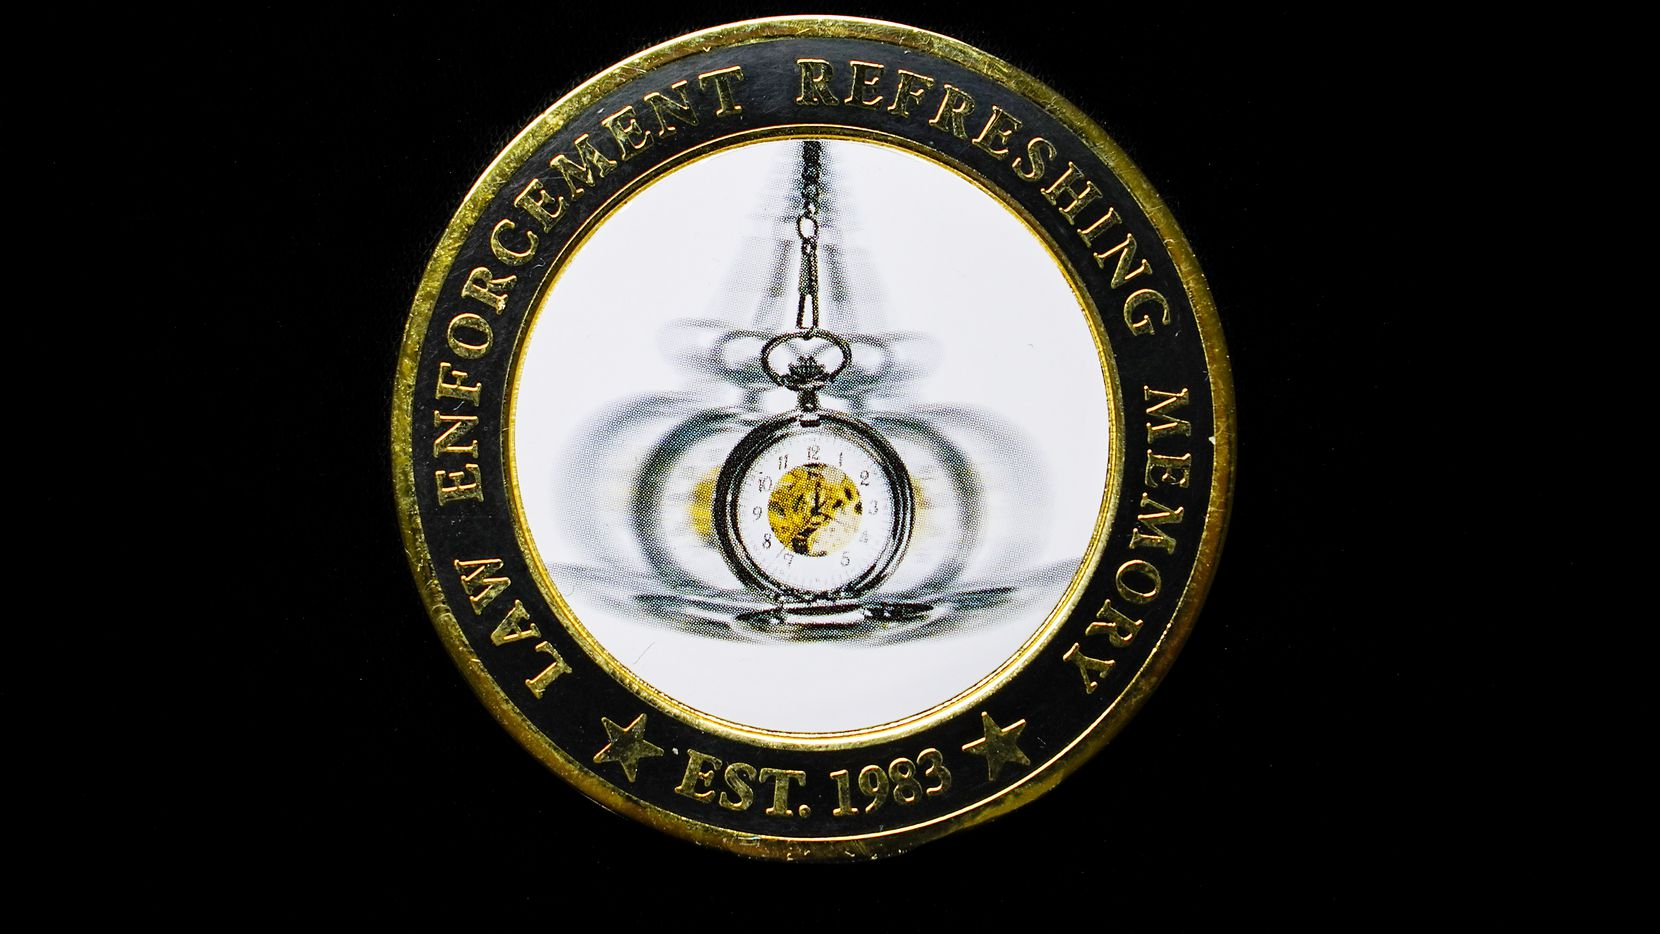 The Texas Association for Investigative Hypnosis sold these commemorative medallions to members at its 2019 annual conference in Huntsville. The association is one of the few, if not the only, remaining societies for police employing hypnosis in criminal investigations. (Smiley Pool/Staff Photographer)